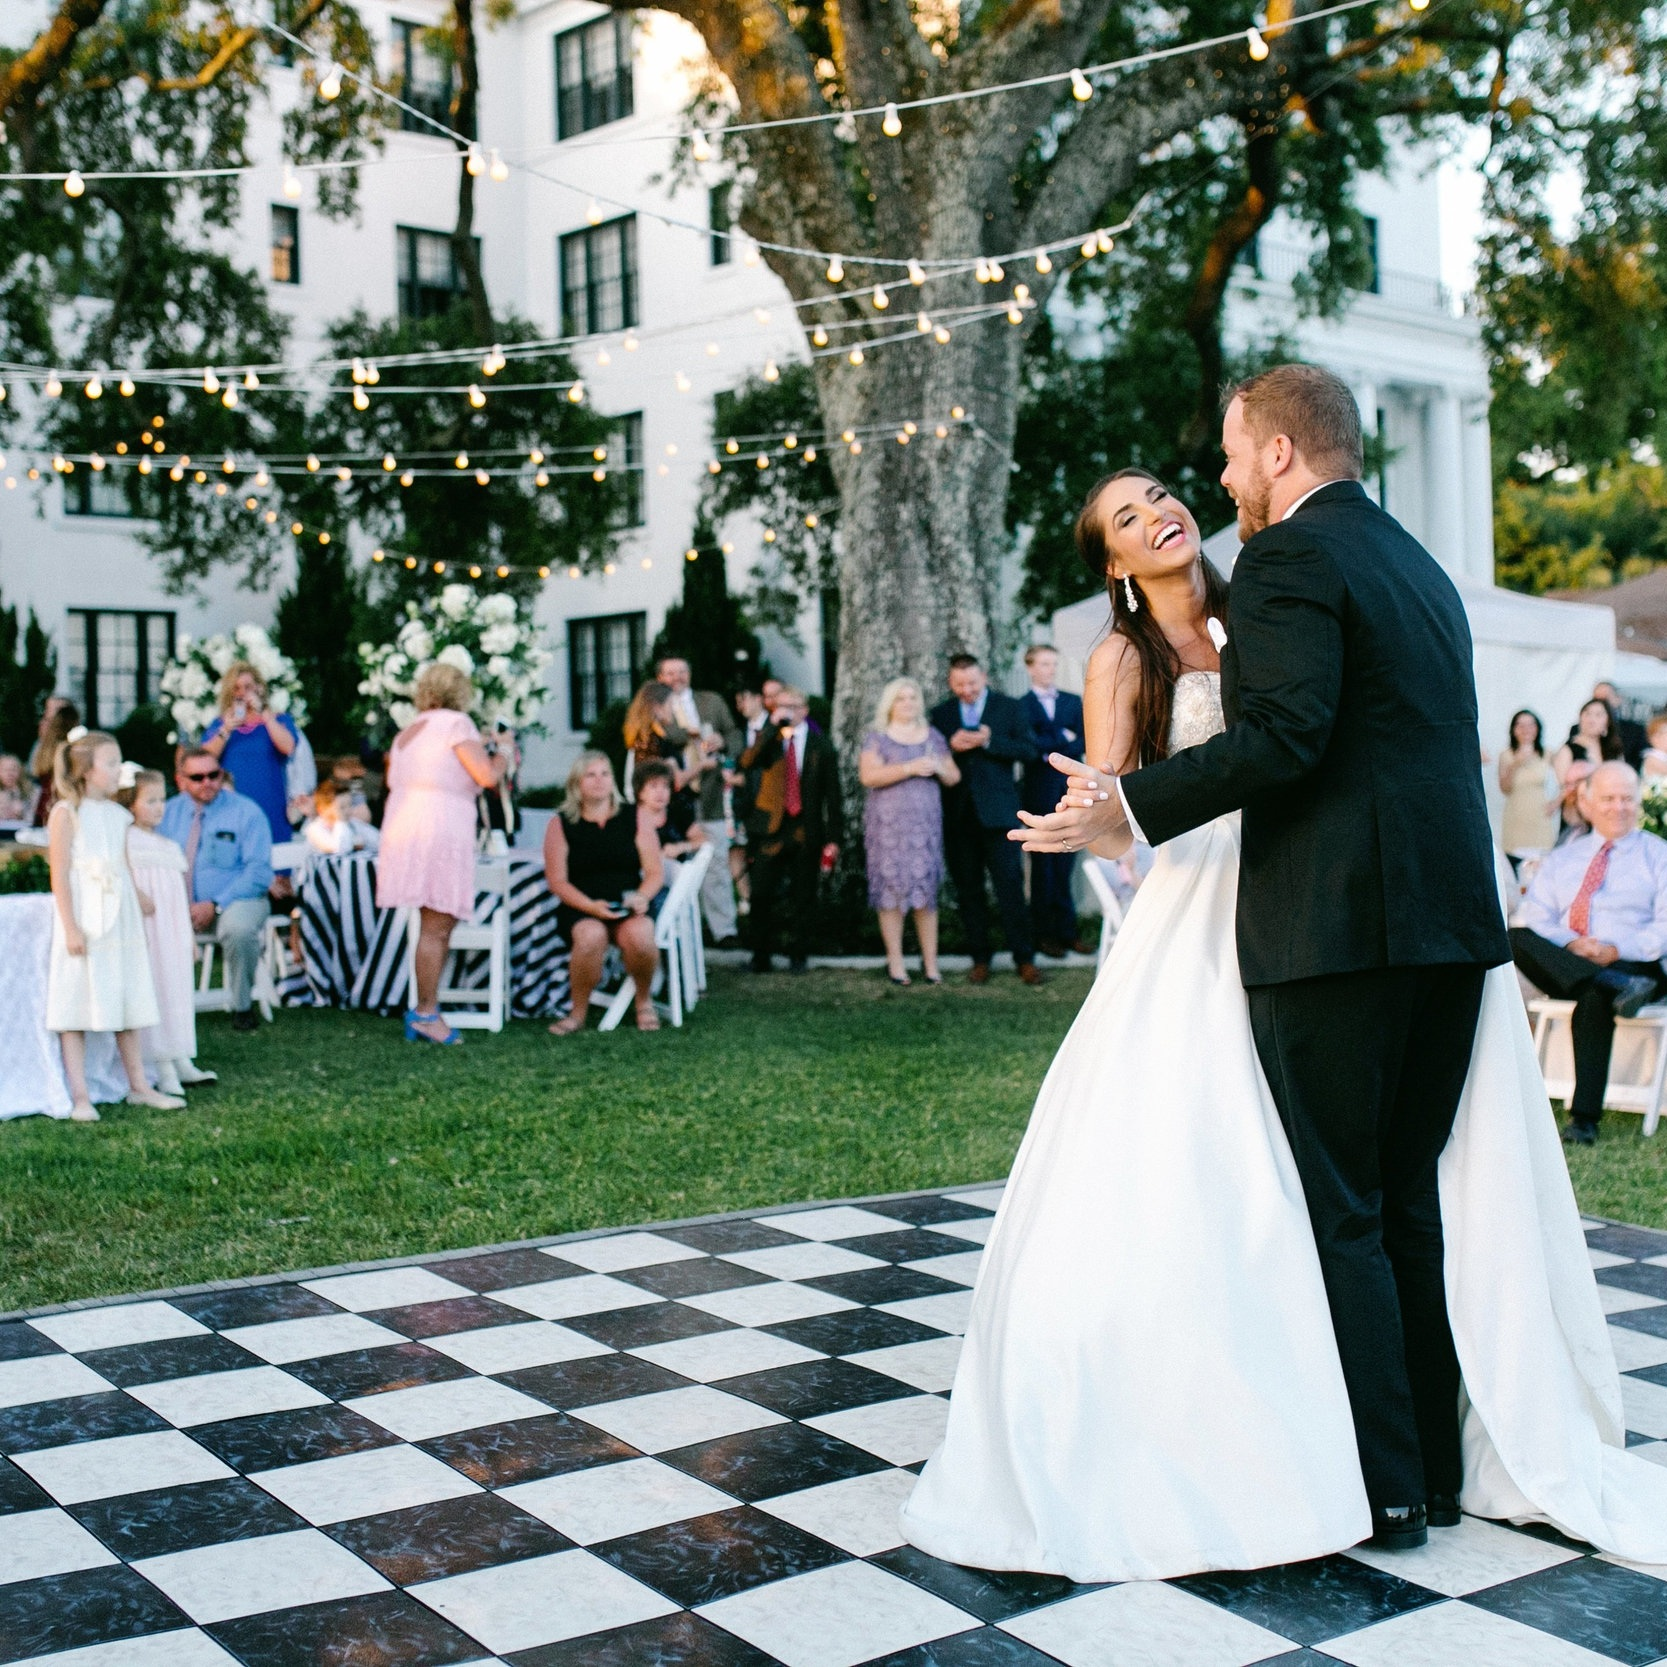 ELEGANCE & BEAUTY - Your special day calls for an exceptional venue. The White House Hotel in Biloxi has become a premier site for weddings and other special events, weaving a lush, historic setting with modern appeal. See photos below of our beautiful features.